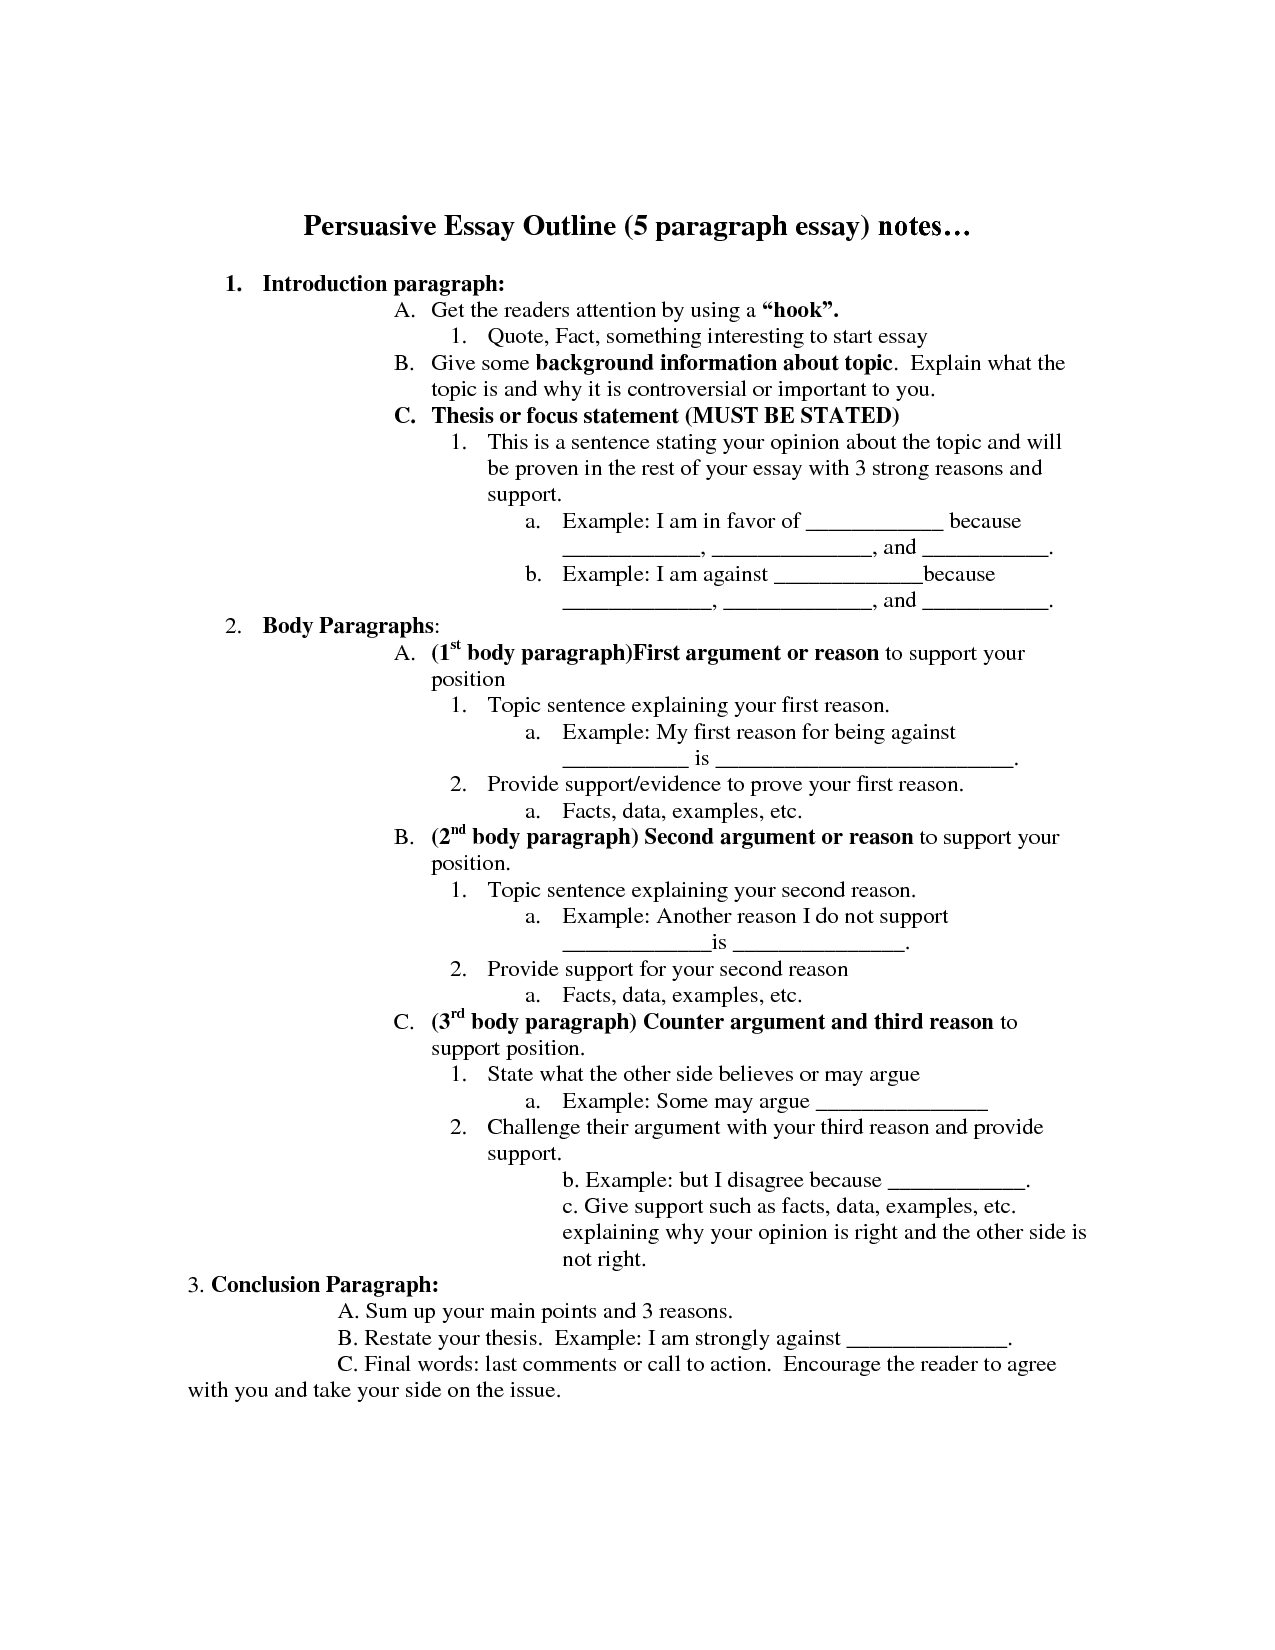 026 Paragraph Essay Outline Persuasive Onwe Bioinnovate Co Within High School Amazing 5 Google Doc Printable Full